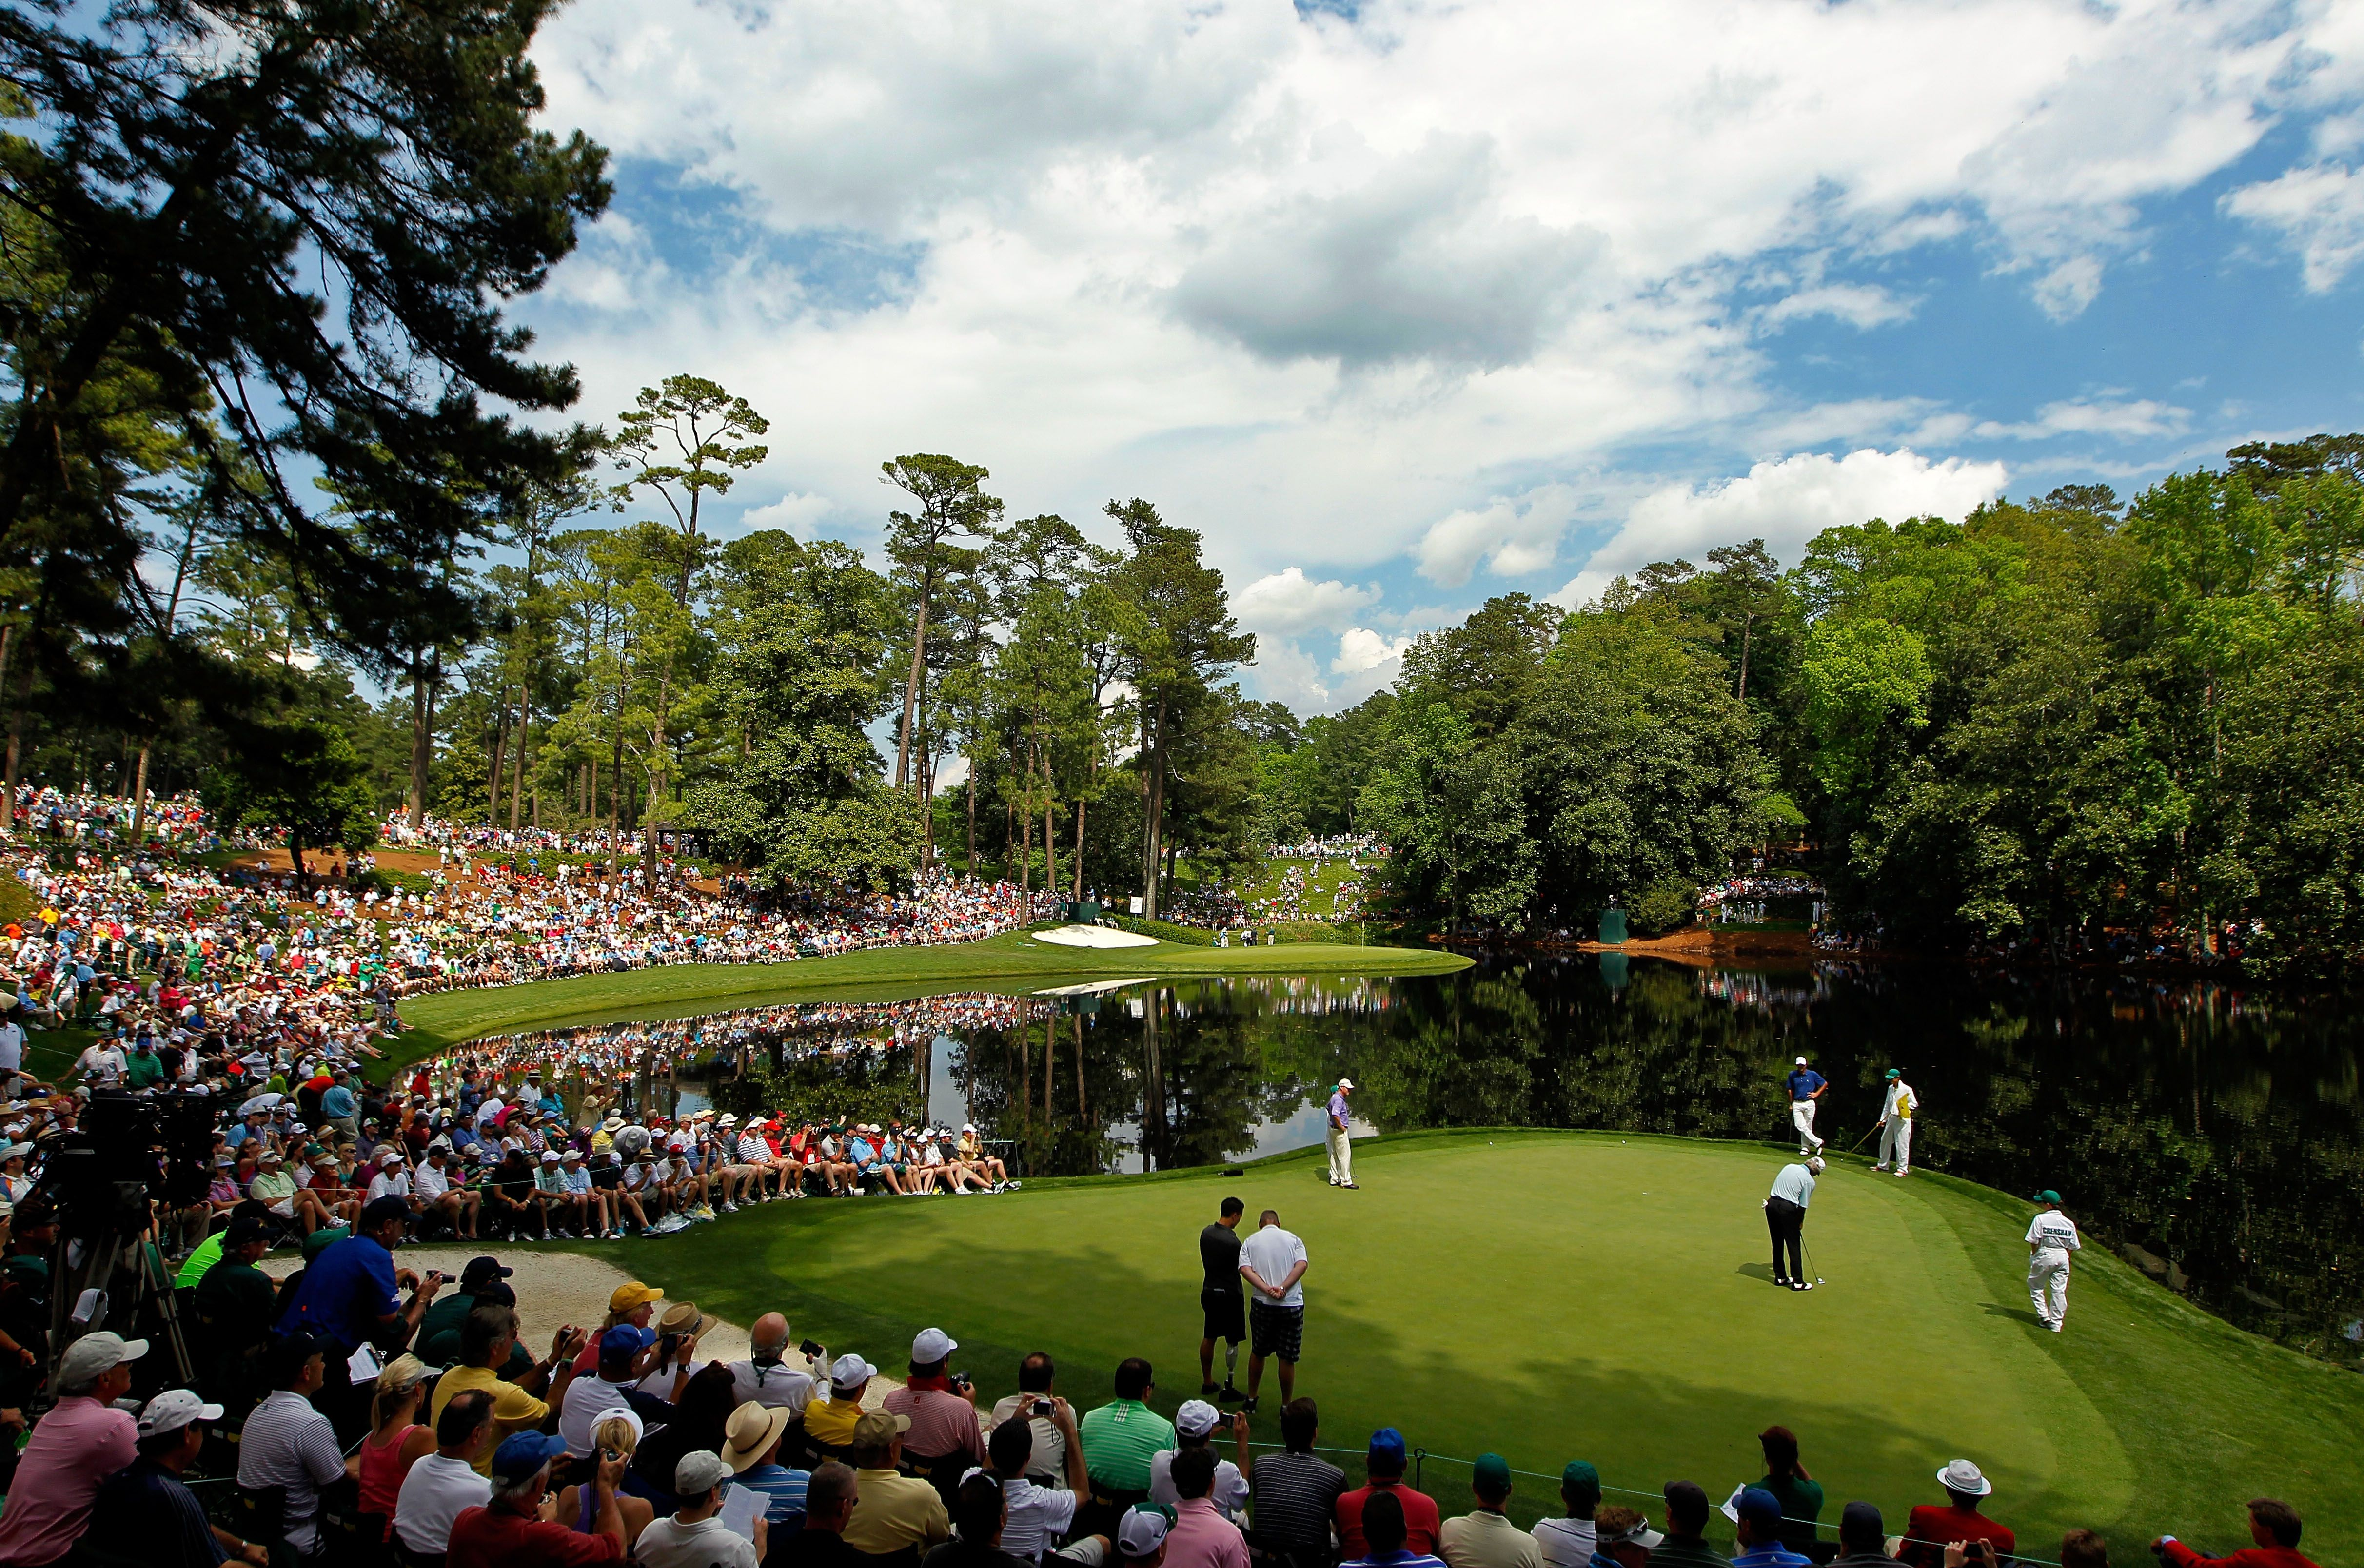 General view of the Par-3 Course at Augusta National including Ike's Pond.